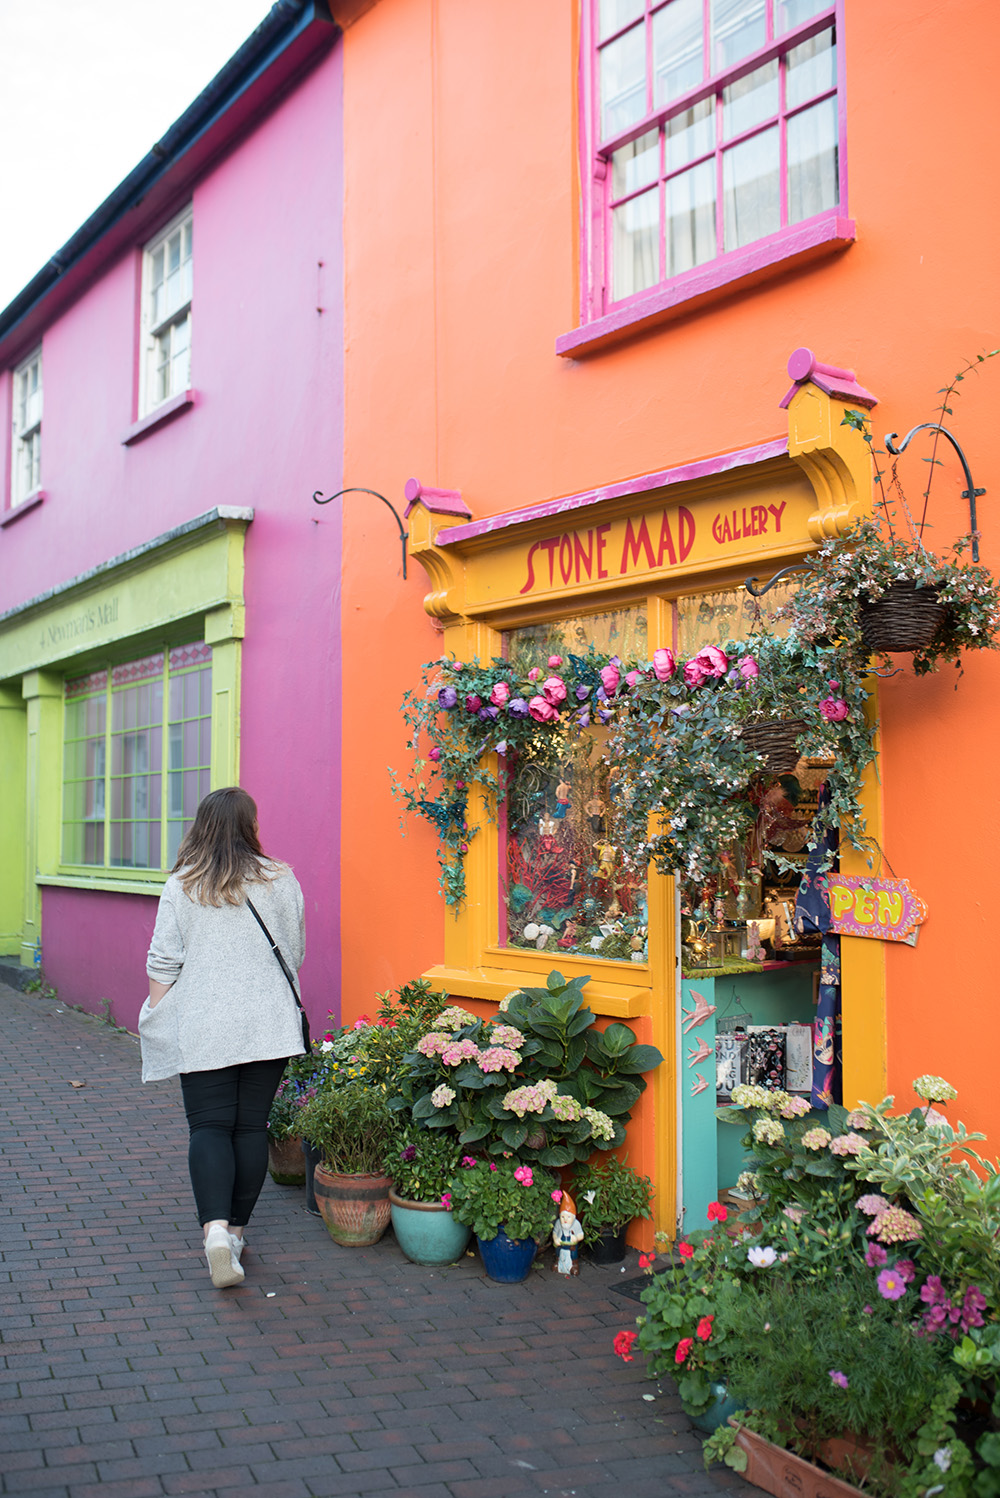 Colourful building in Kinsale